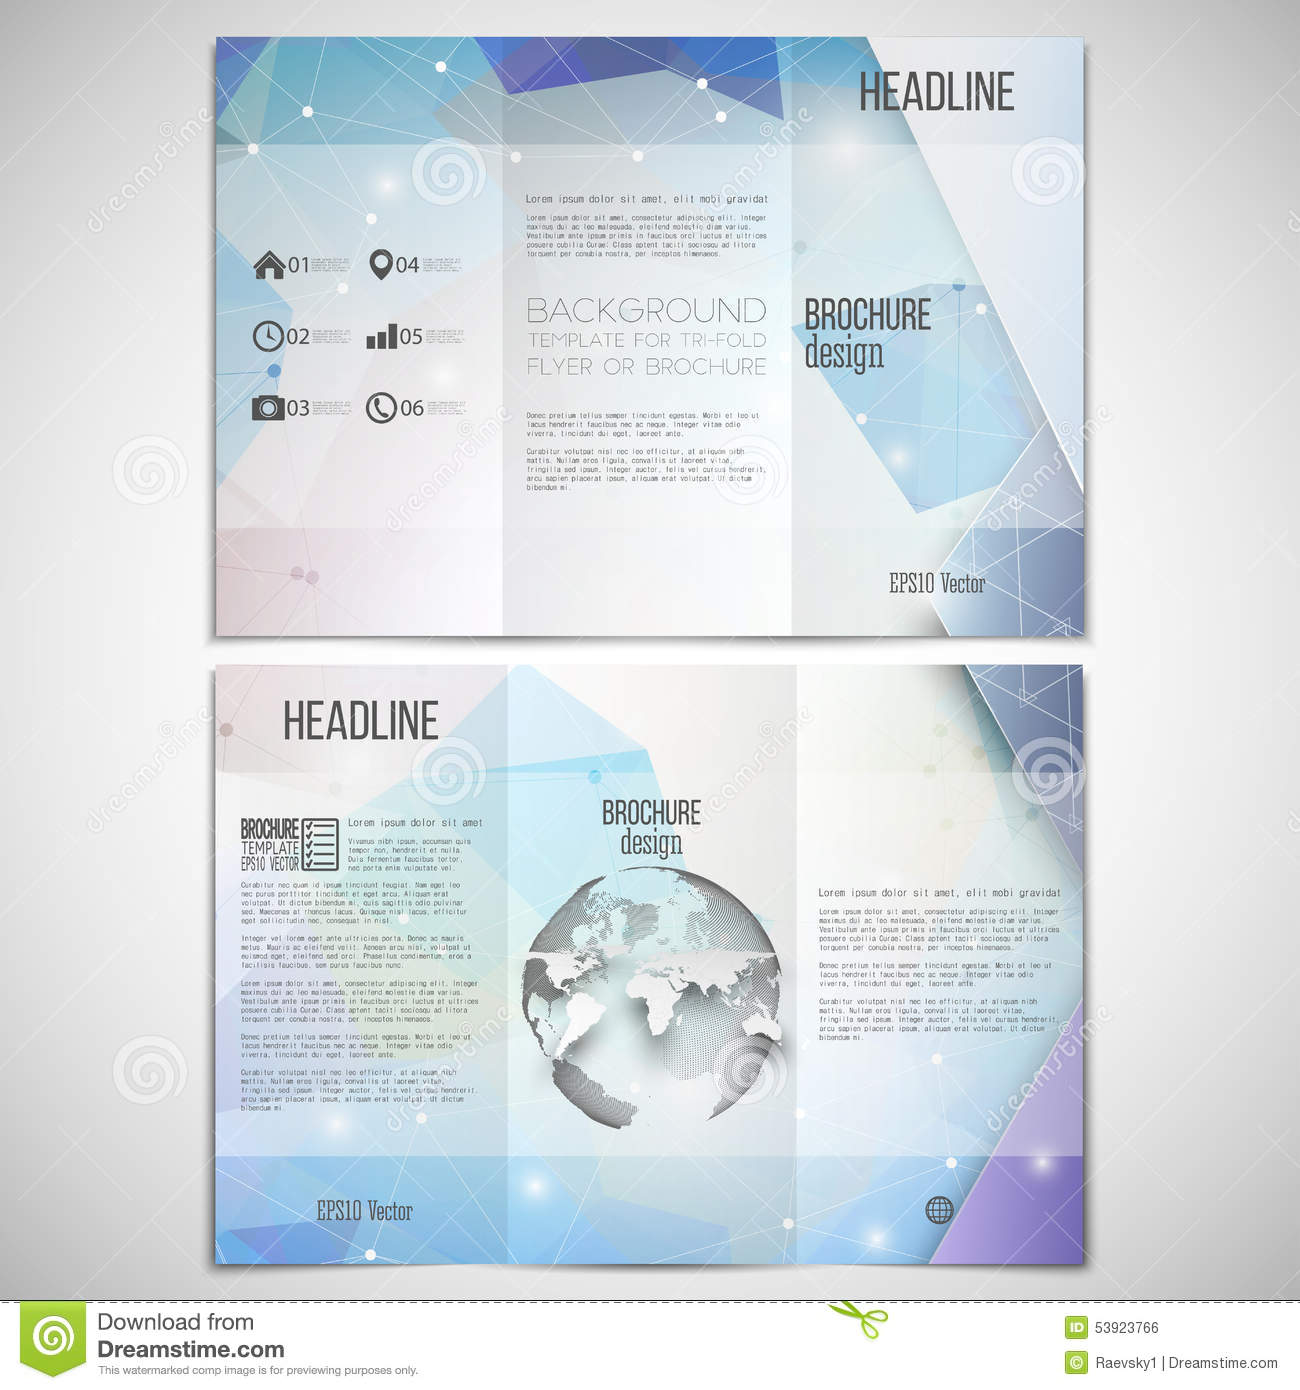 science brochure template - science brochure template lightworksme tri fold brochure